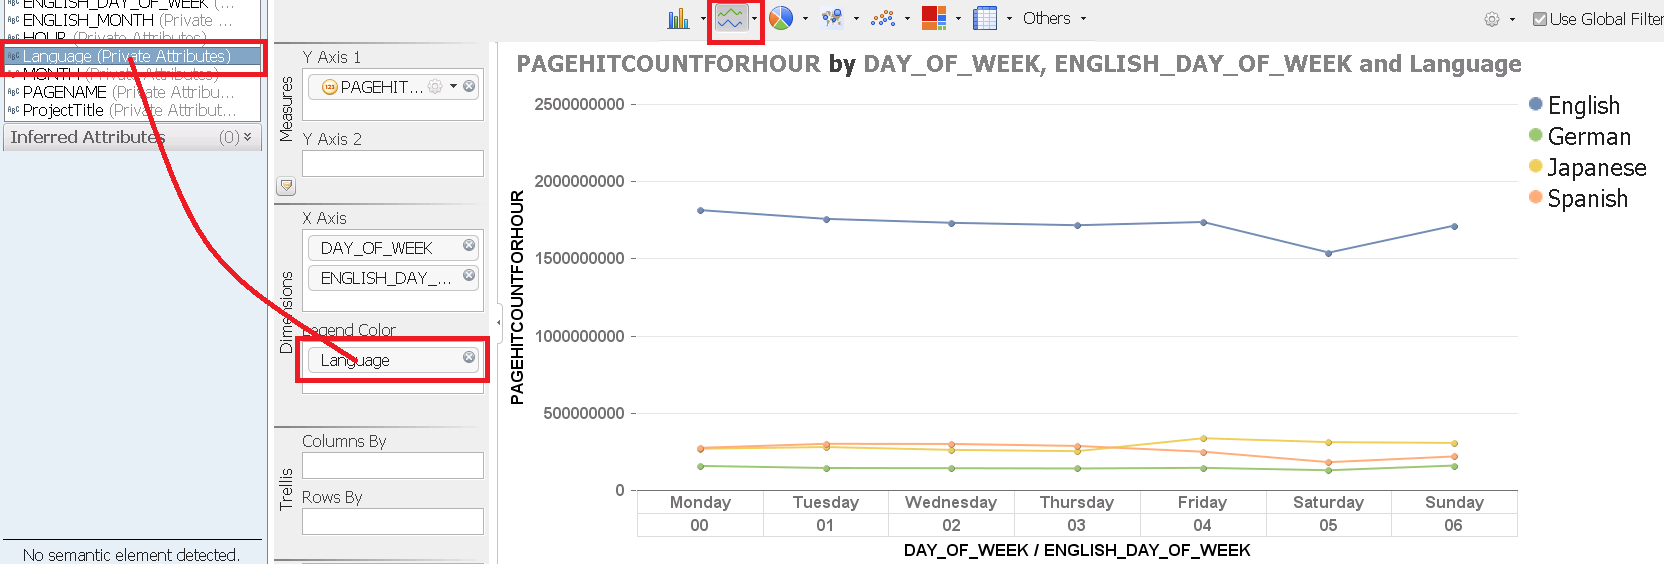 Figure 16 Languages by day of the week.png